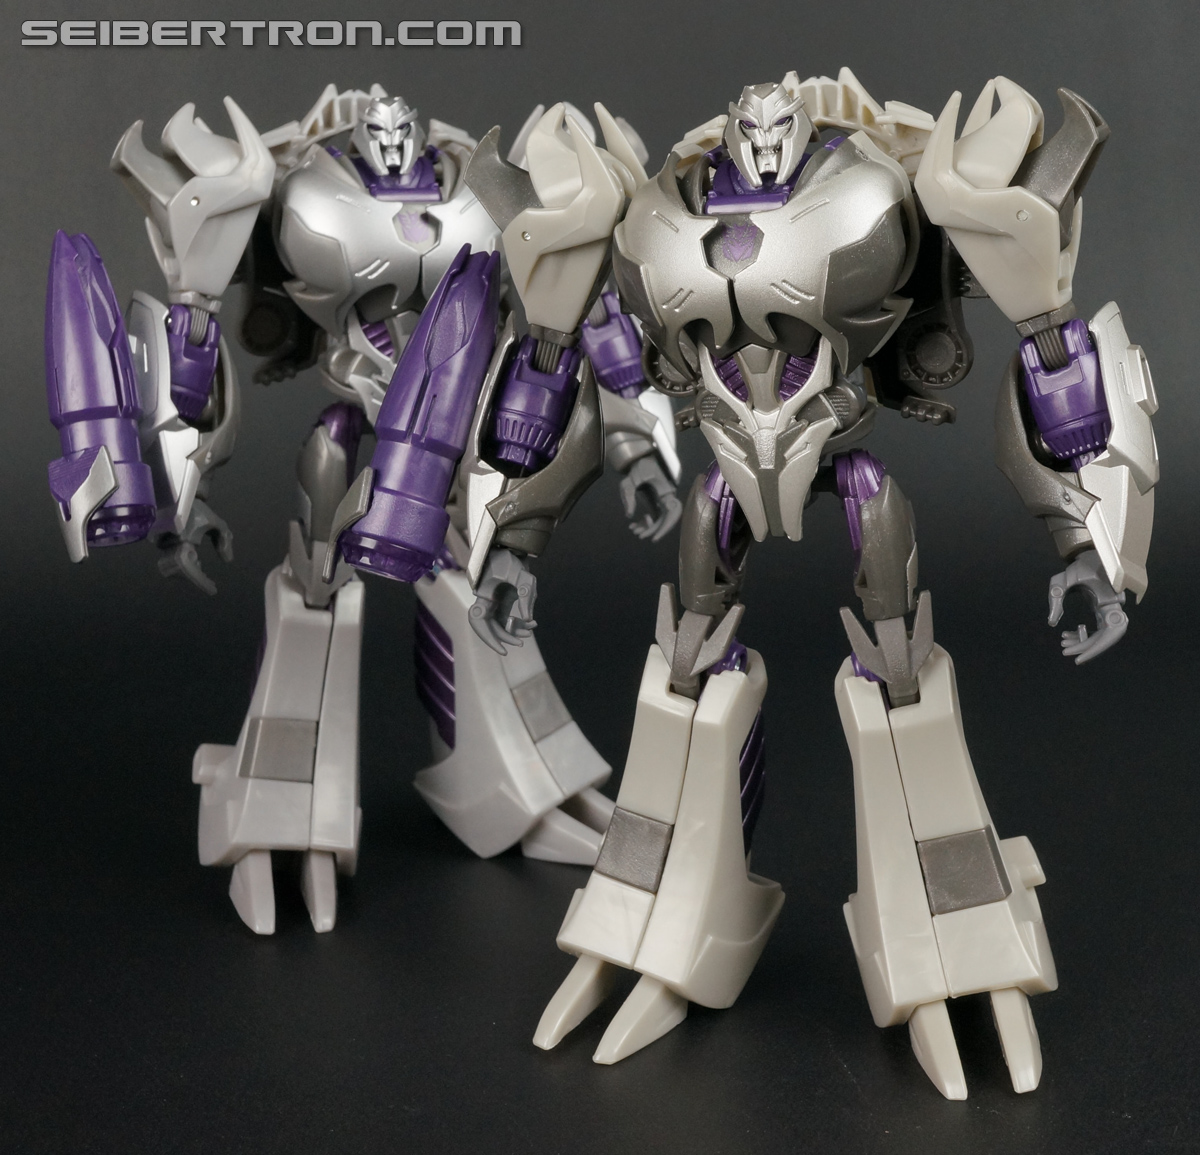 Transformers First Edition Megatron (Image #142 of 165)